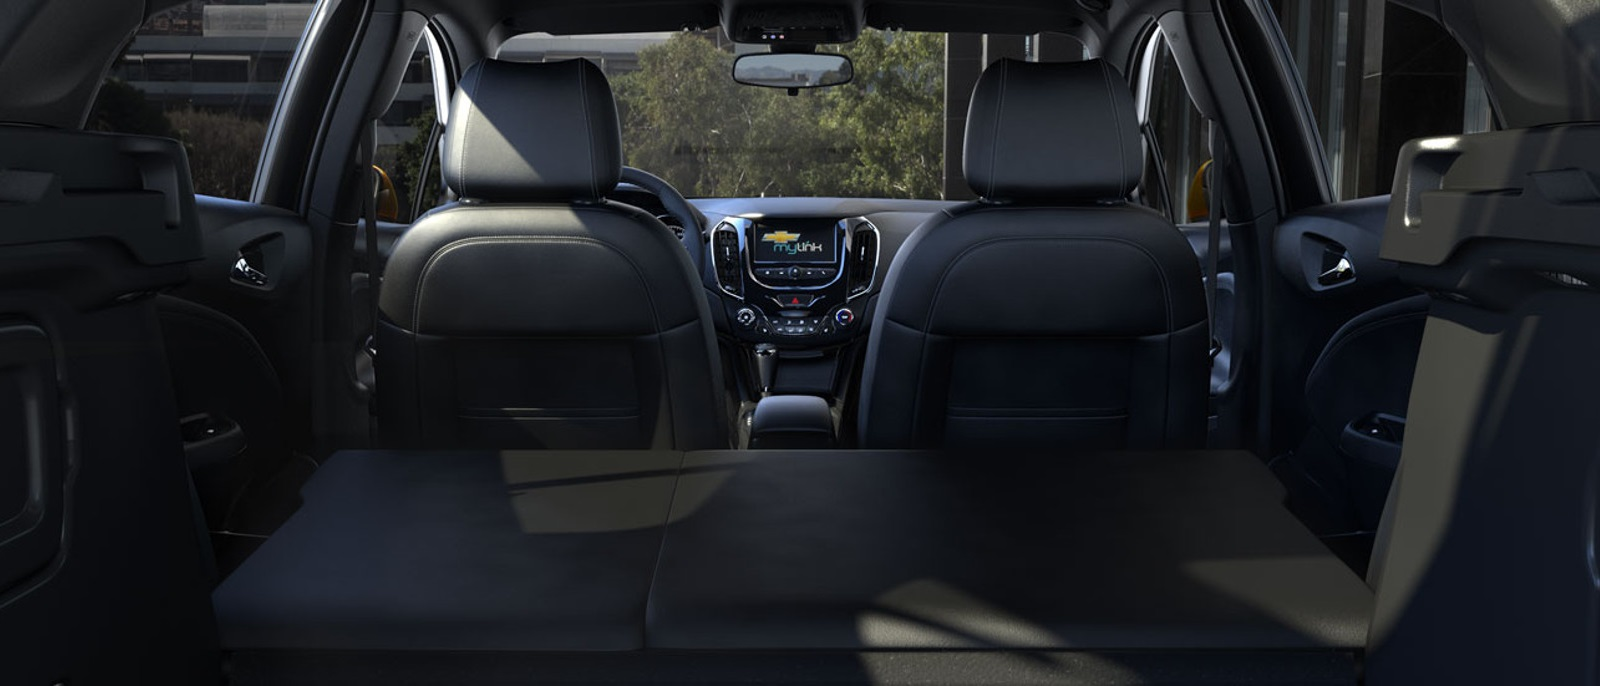 2017-chevrolet-cruze-hatchback-reveal-interior